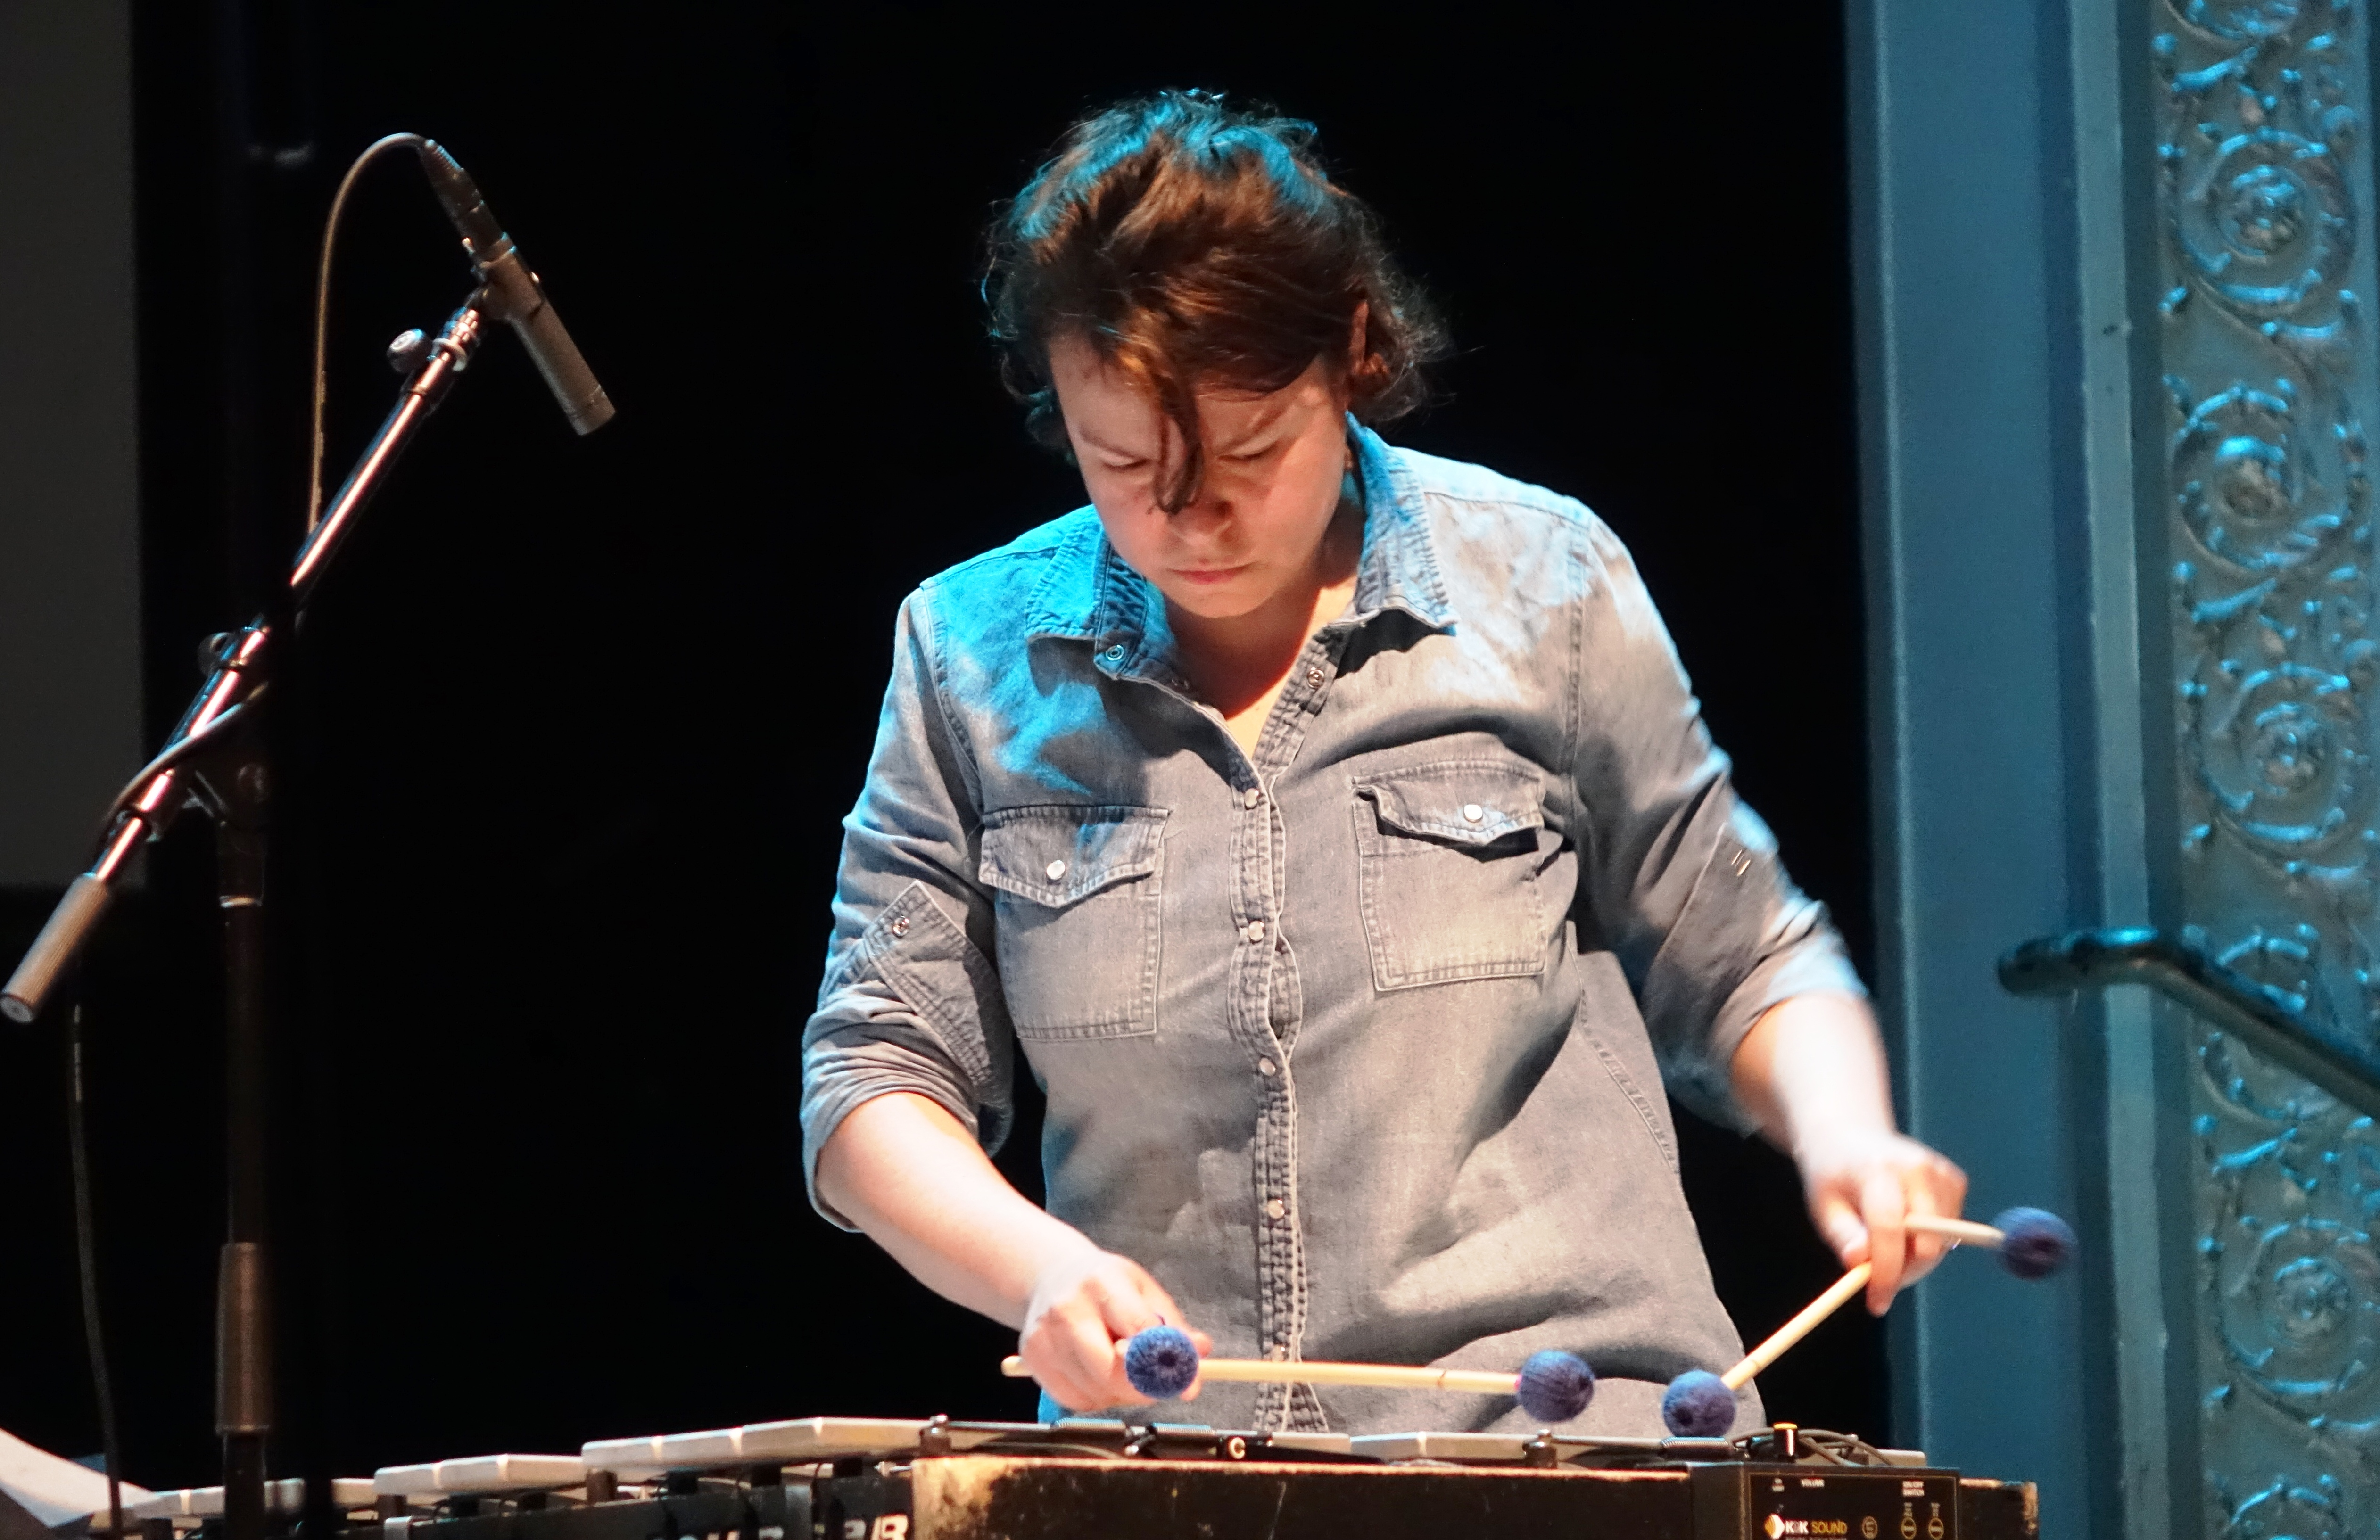 Patricia Brennan at the Vision Festival in Roulette, Brooklyn in June 2019